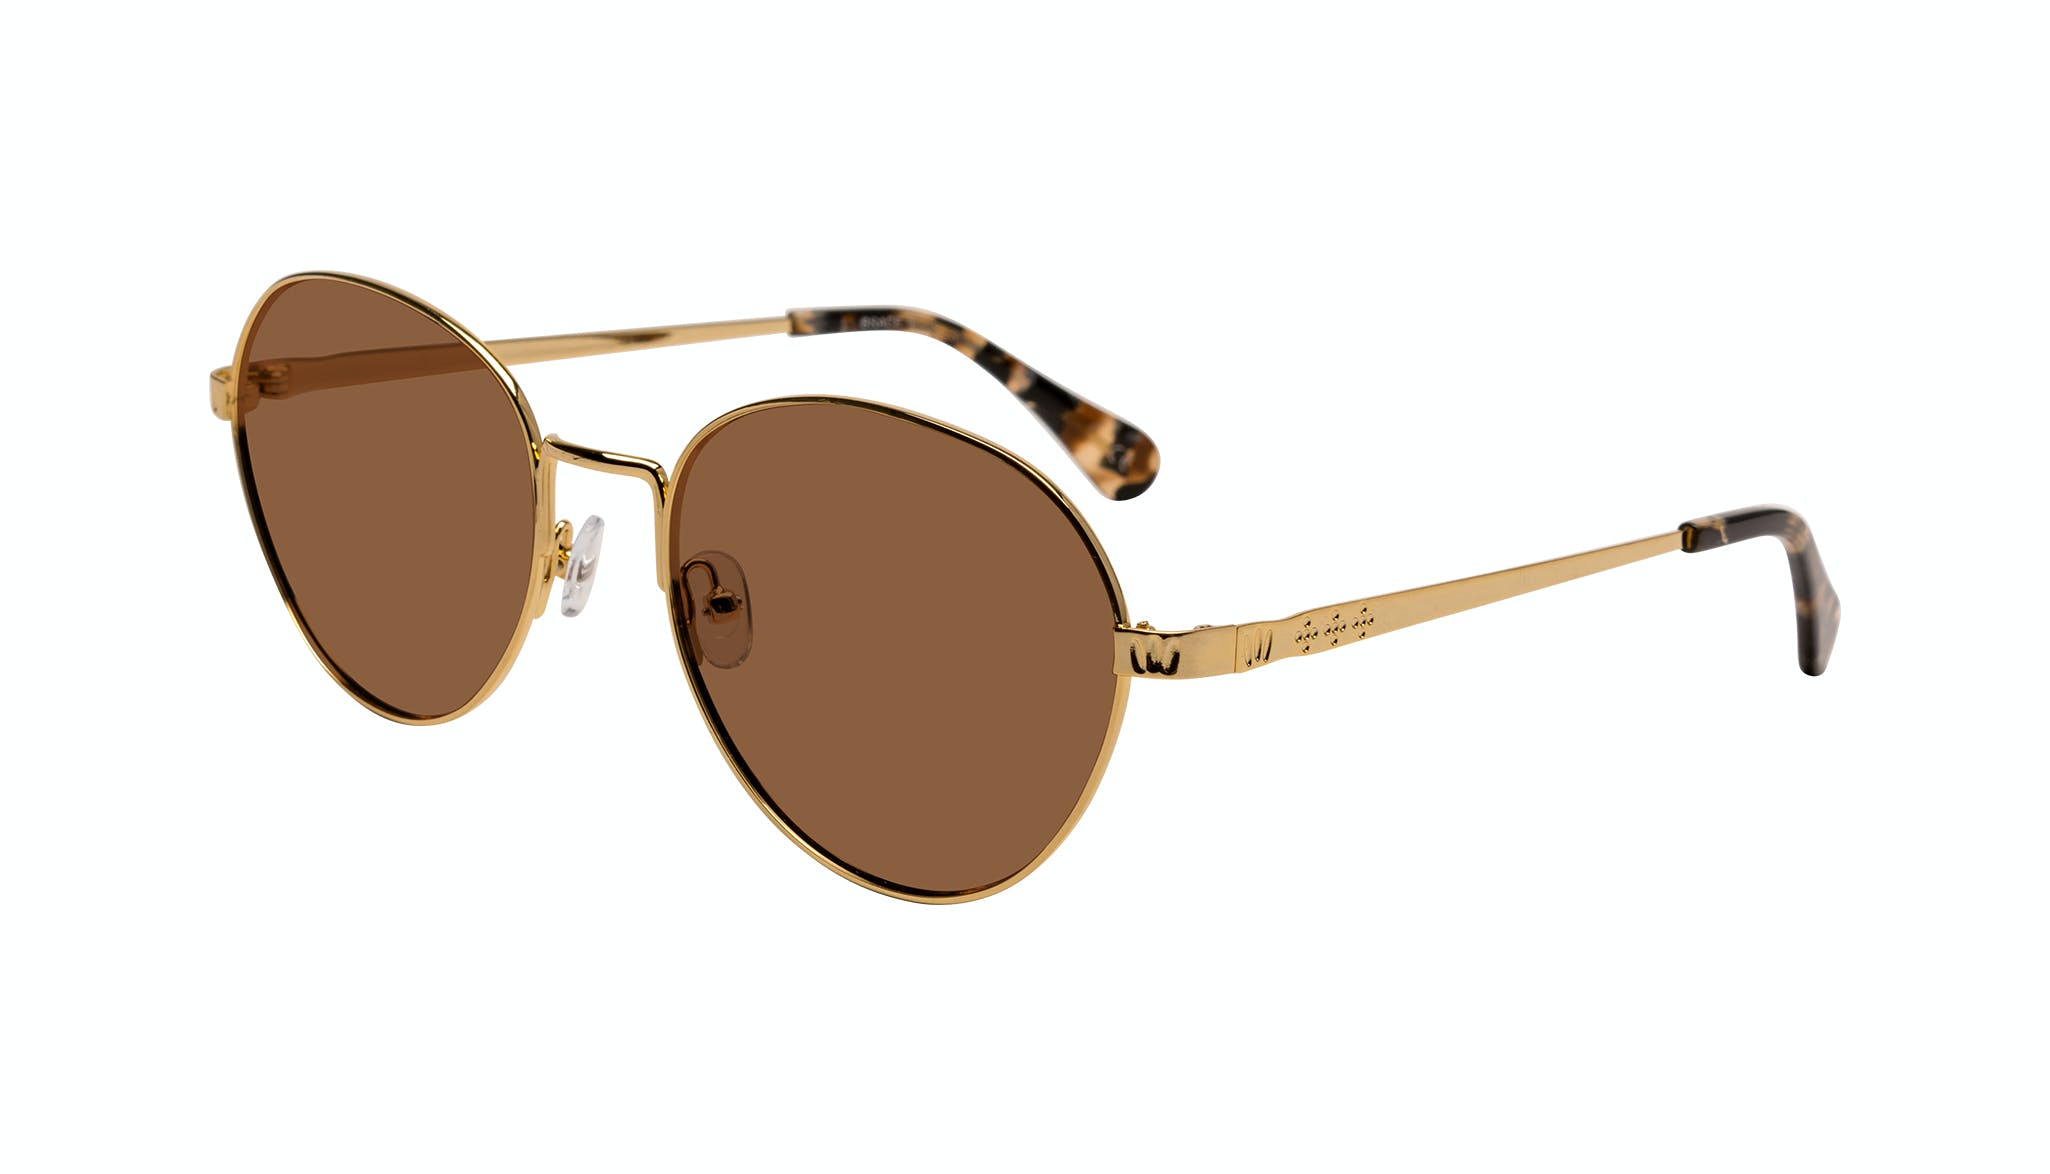 Affordable Fashion Glasses Round Sunglasses Women Brace Plus Gold Tilt